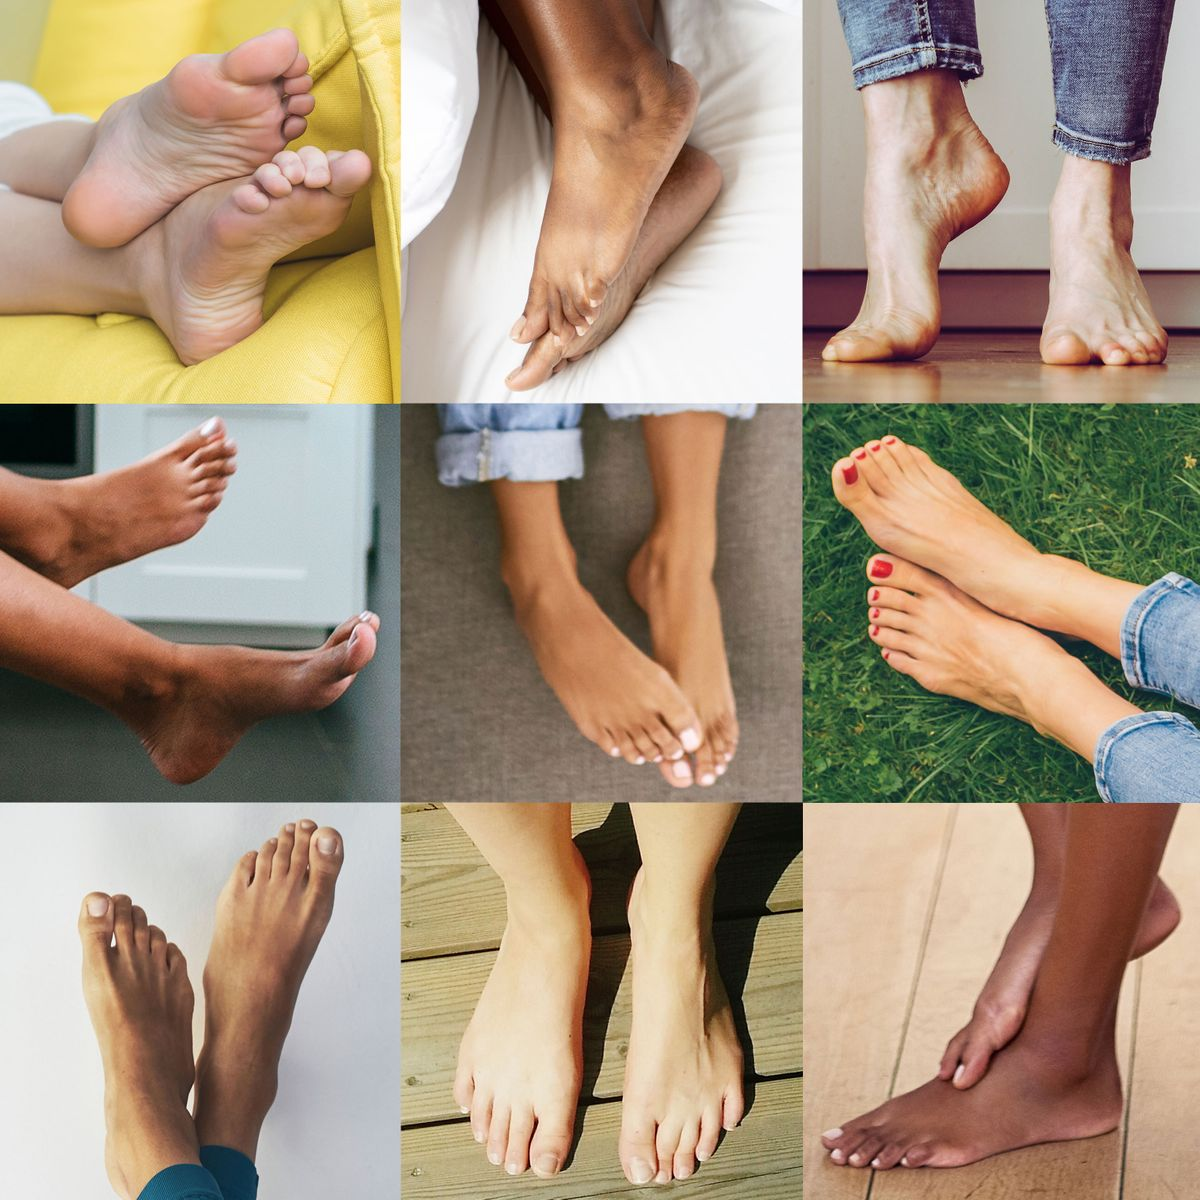 Why People Have Foot Fetish photo 27